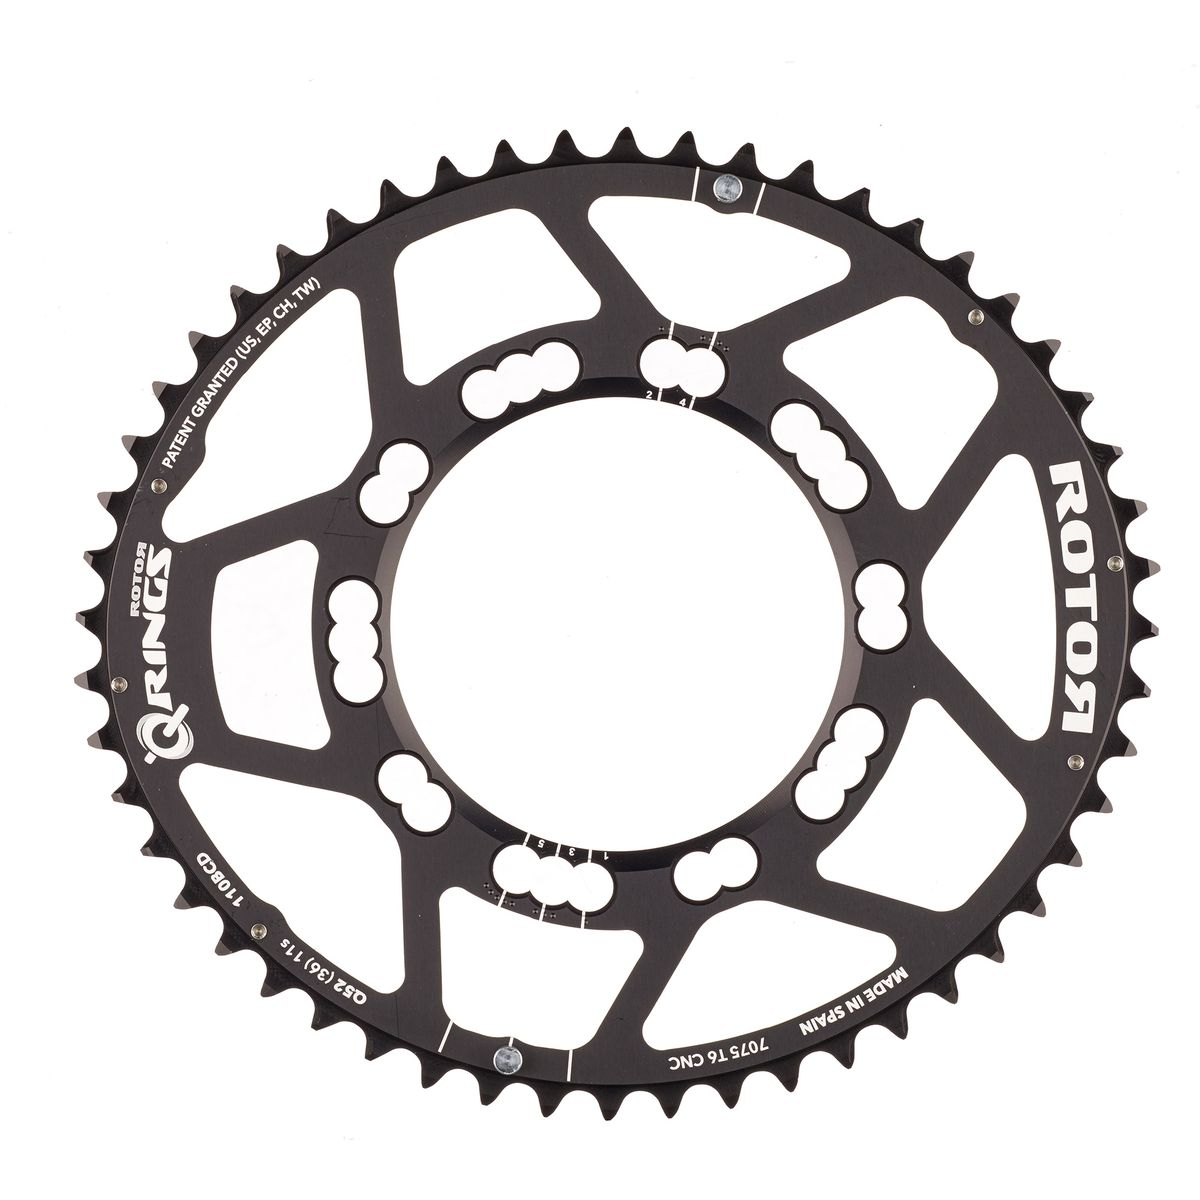 Q-Rings 52-tooth chainring 110mm bolt circle